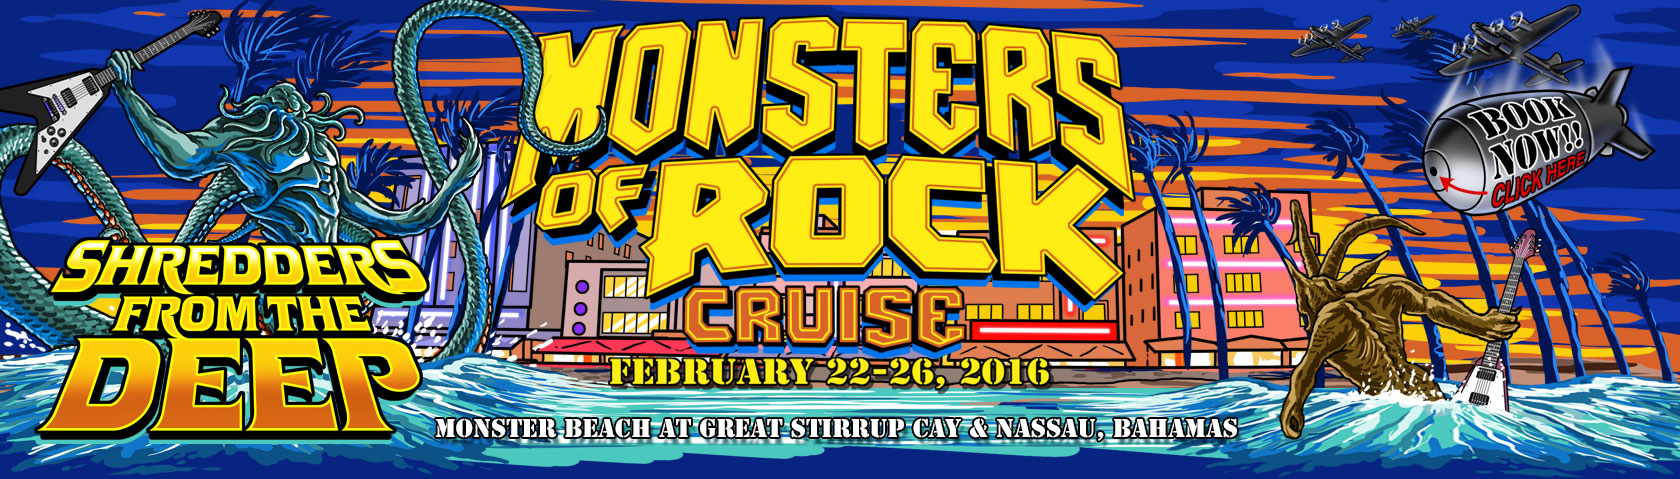 Monsters of Rock Cruise 2016, United States